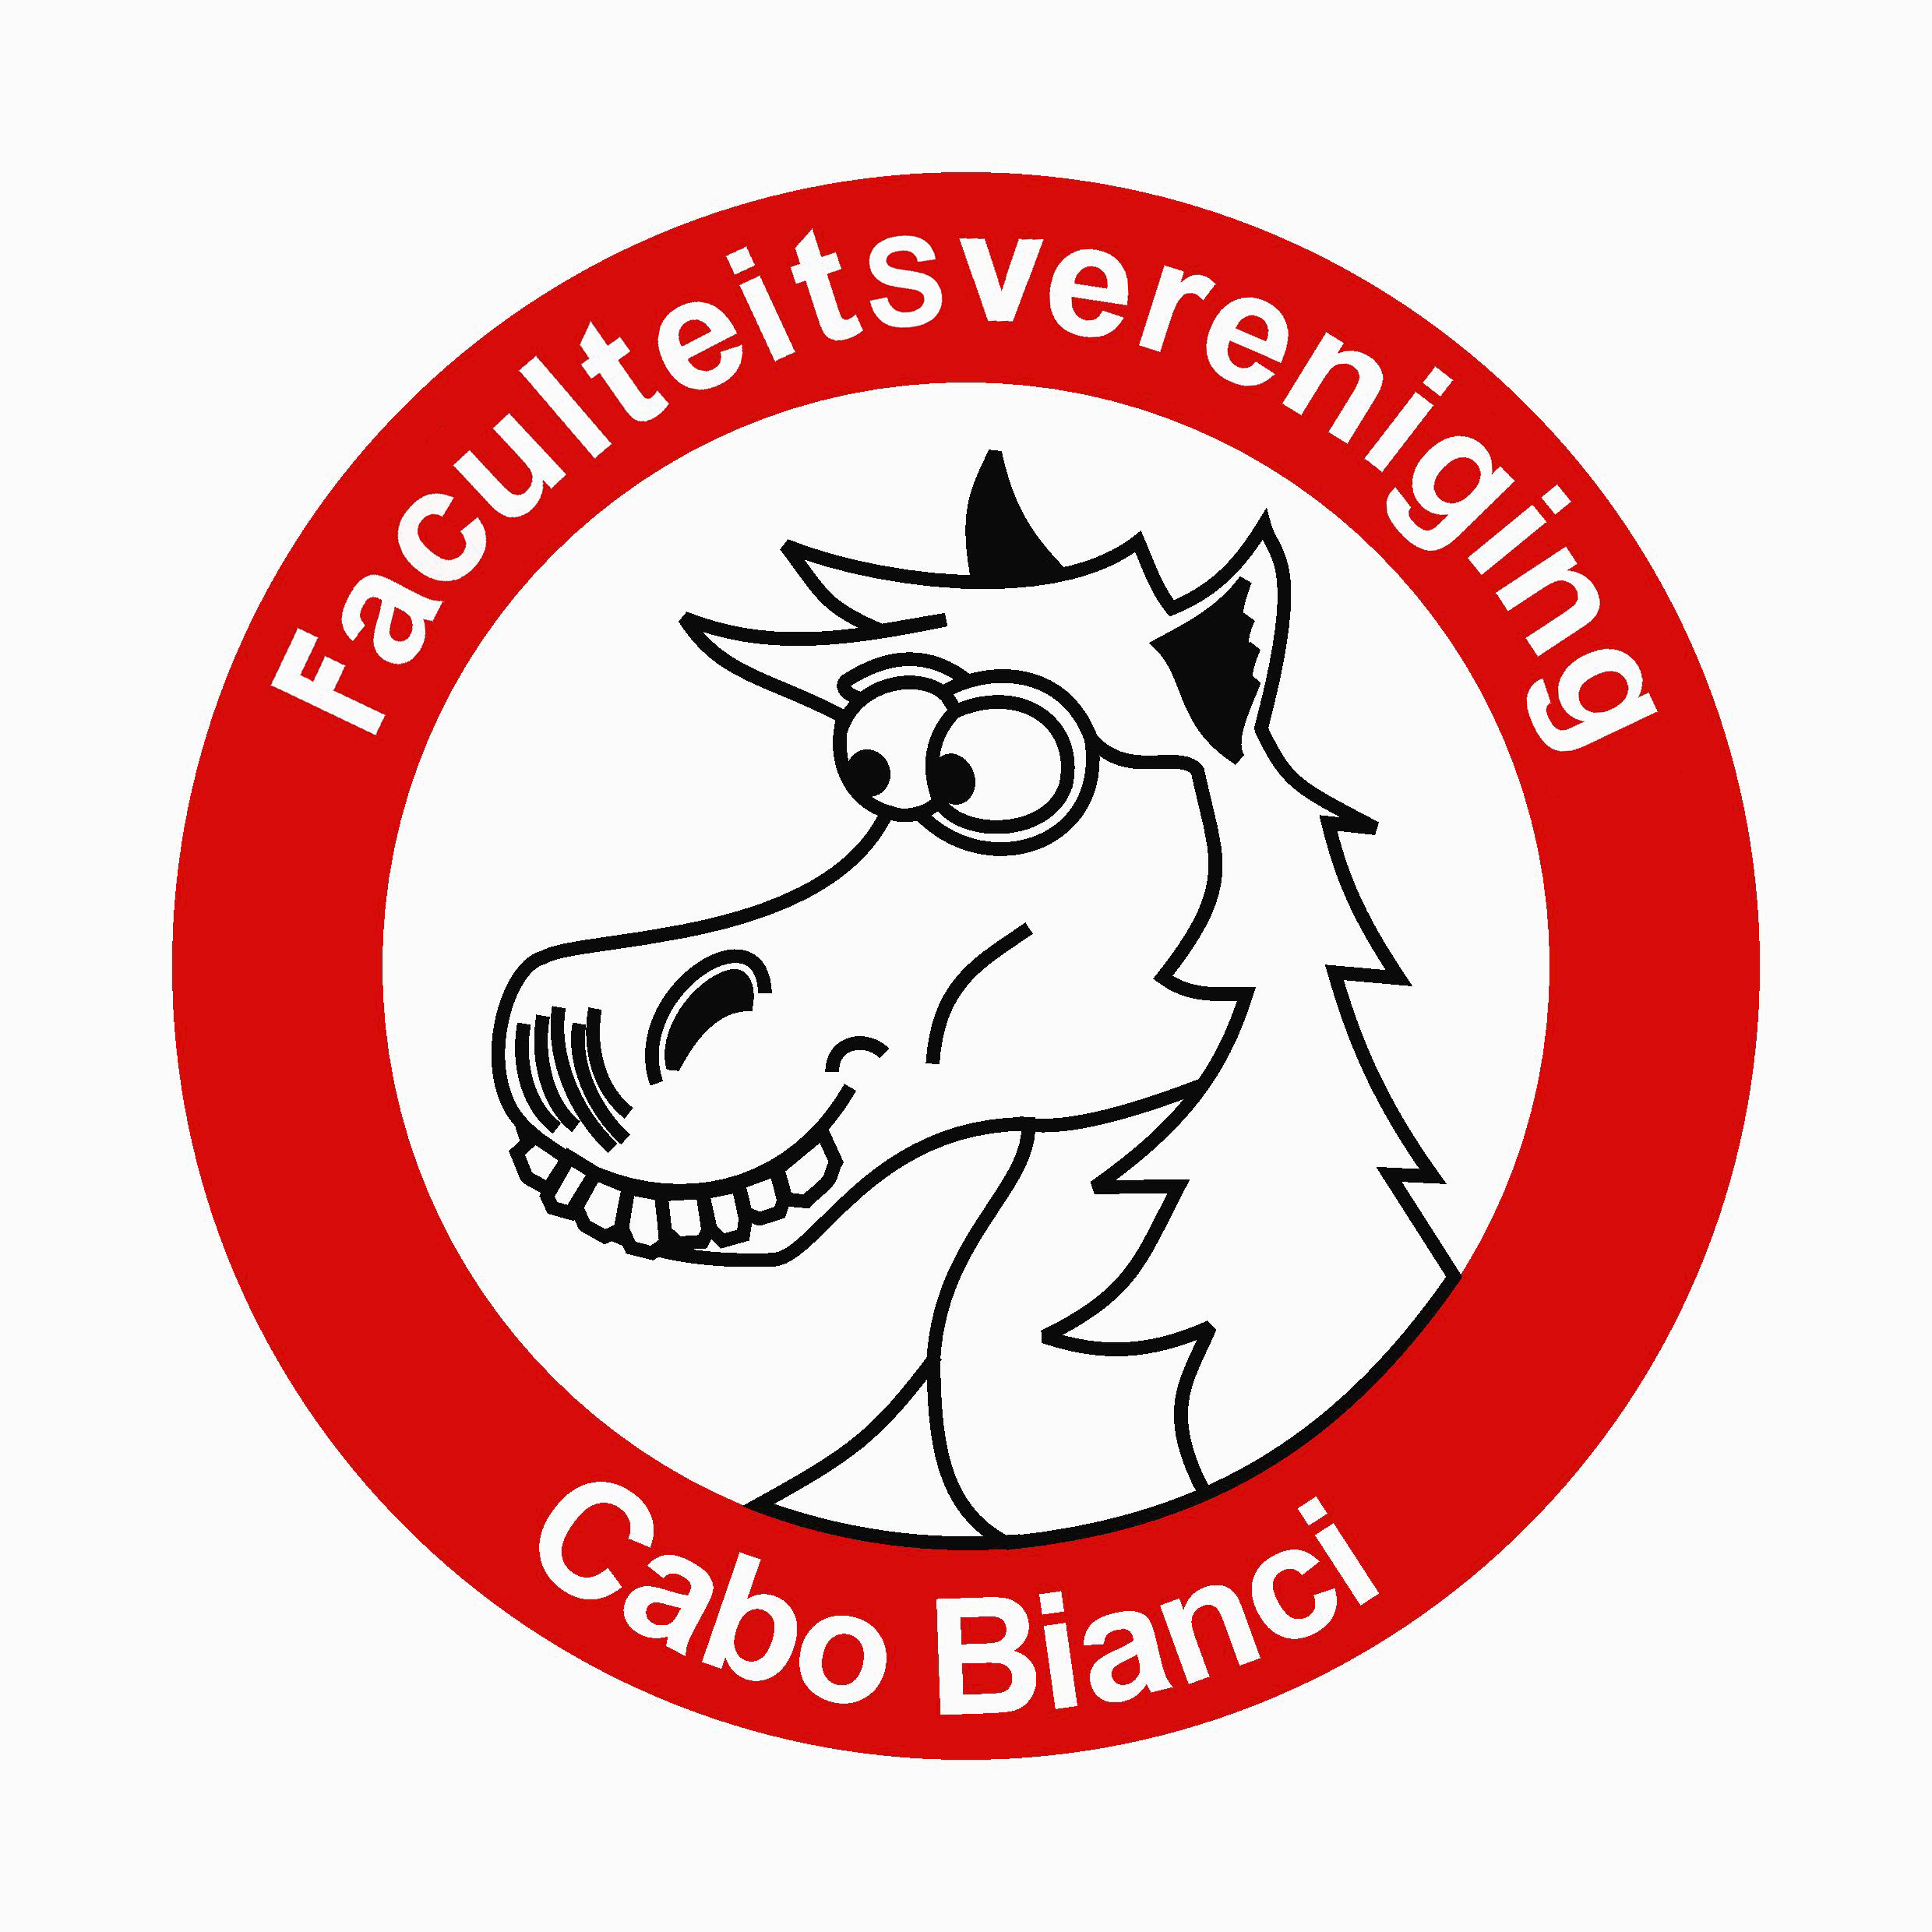 Cabo-Bianci-Faculteits-Logo1